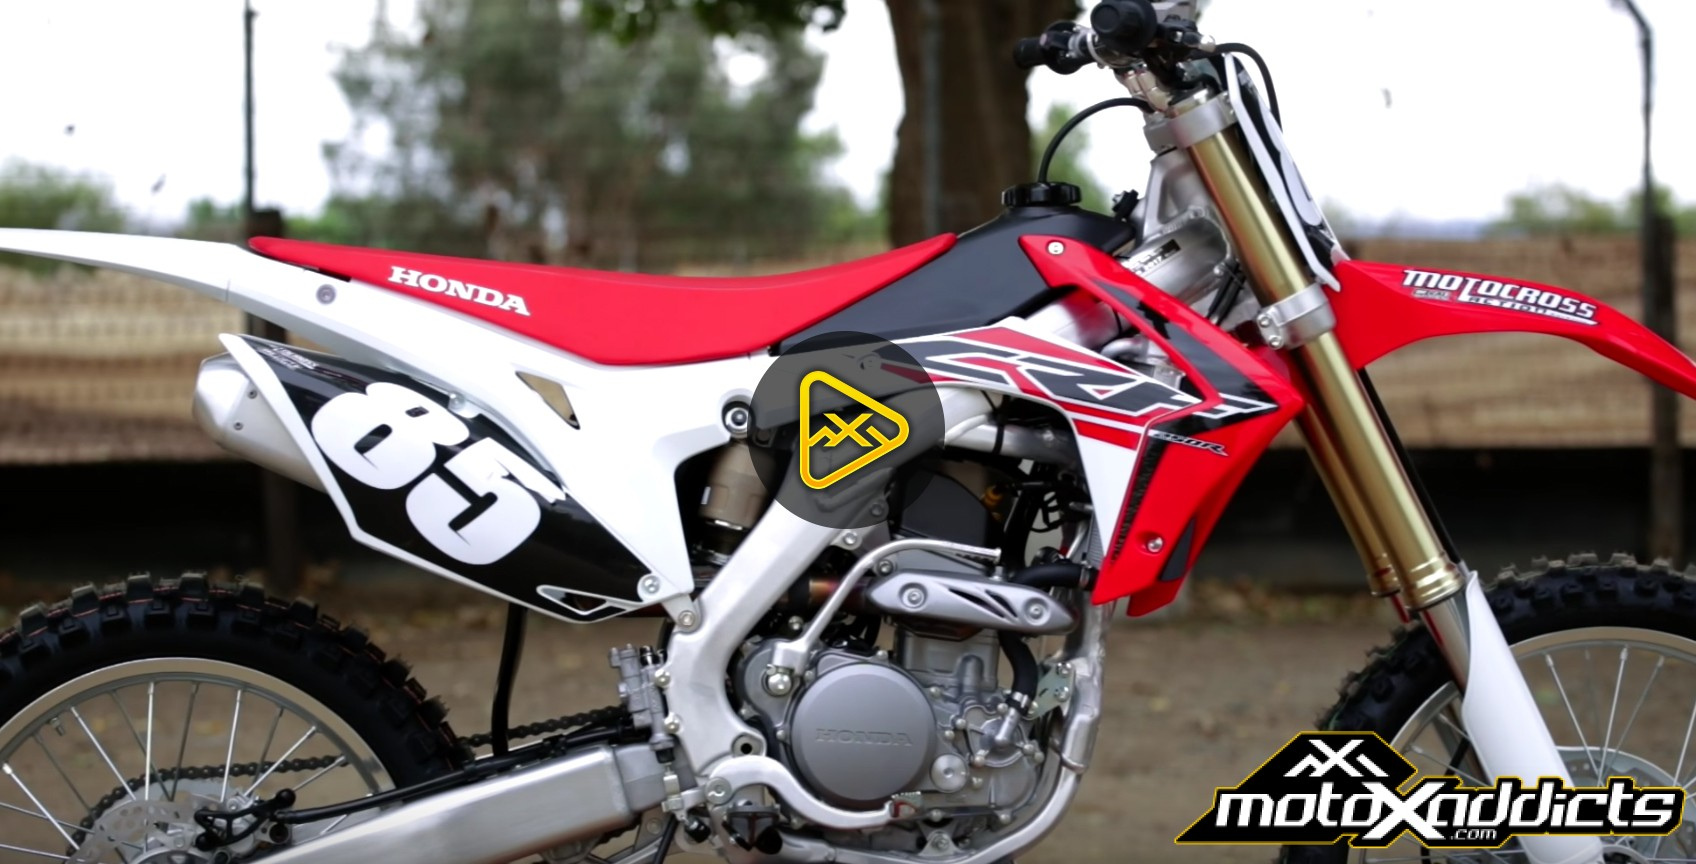 First Ride of the 2017 Honda CRF250